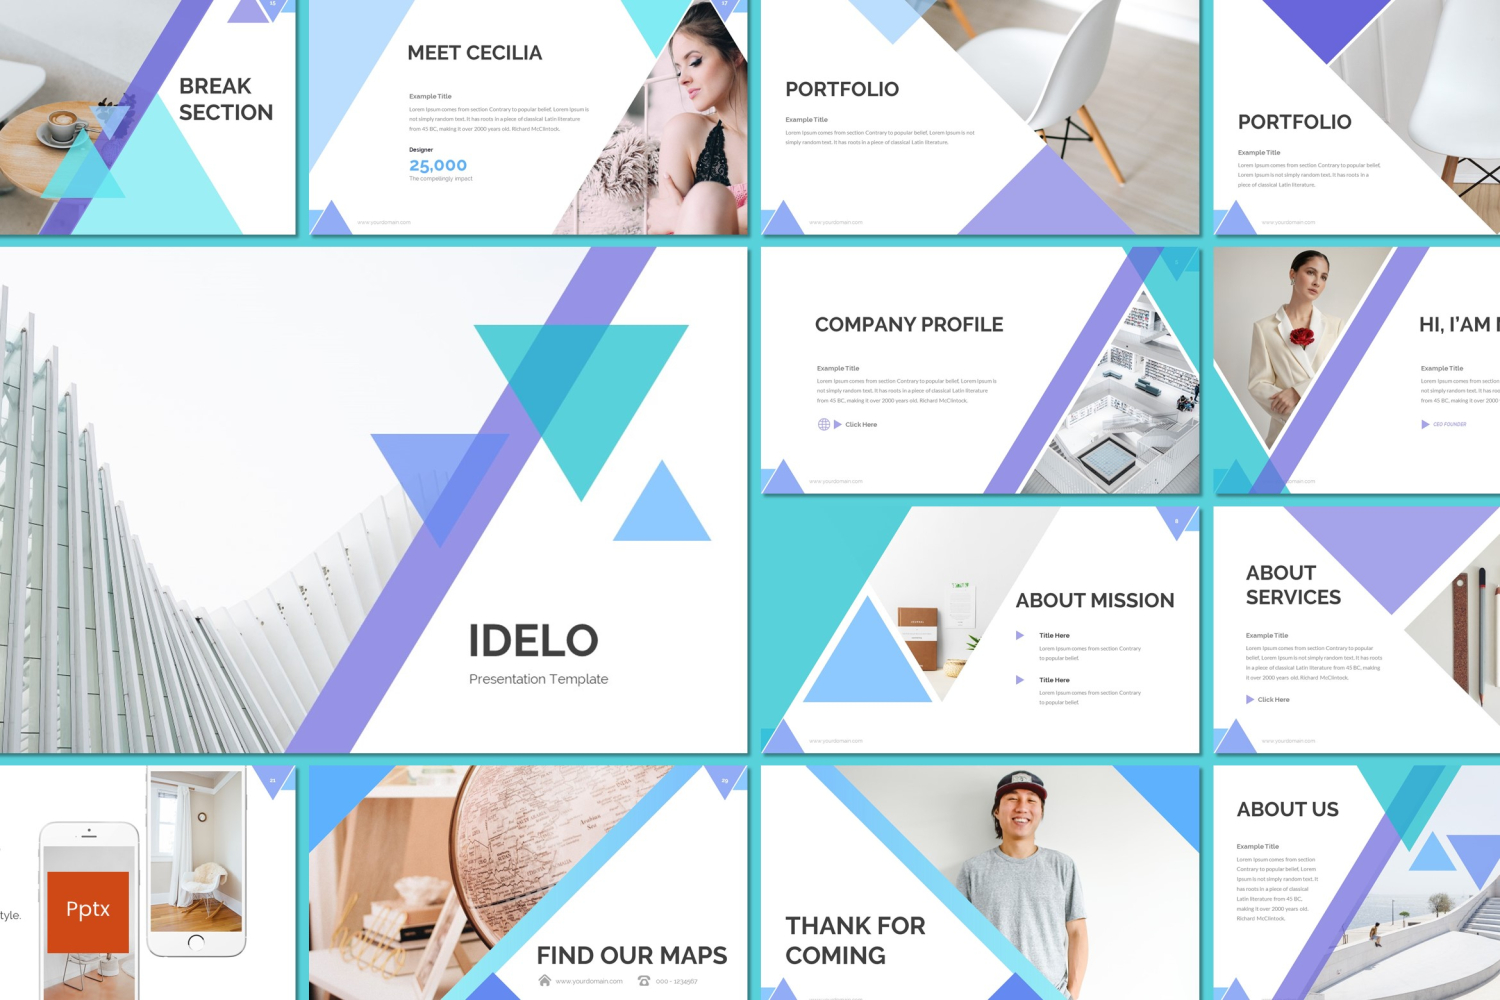 Idelo PowerPoint Template